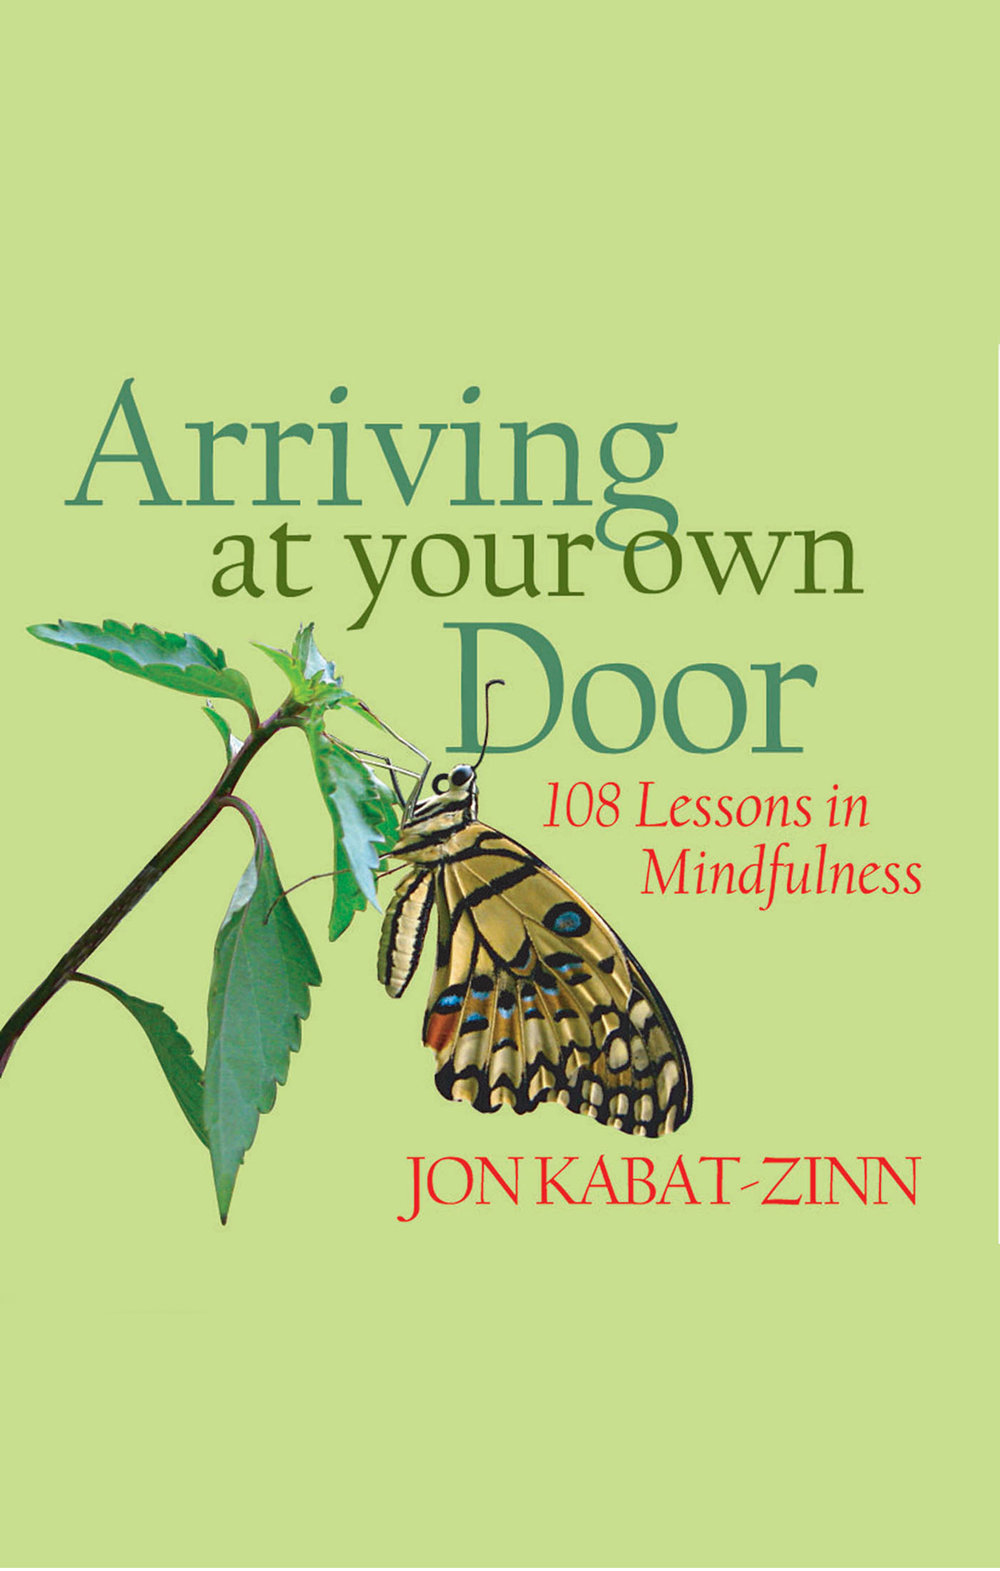 Arriving at your own Door   Jon Kabat-Zinn